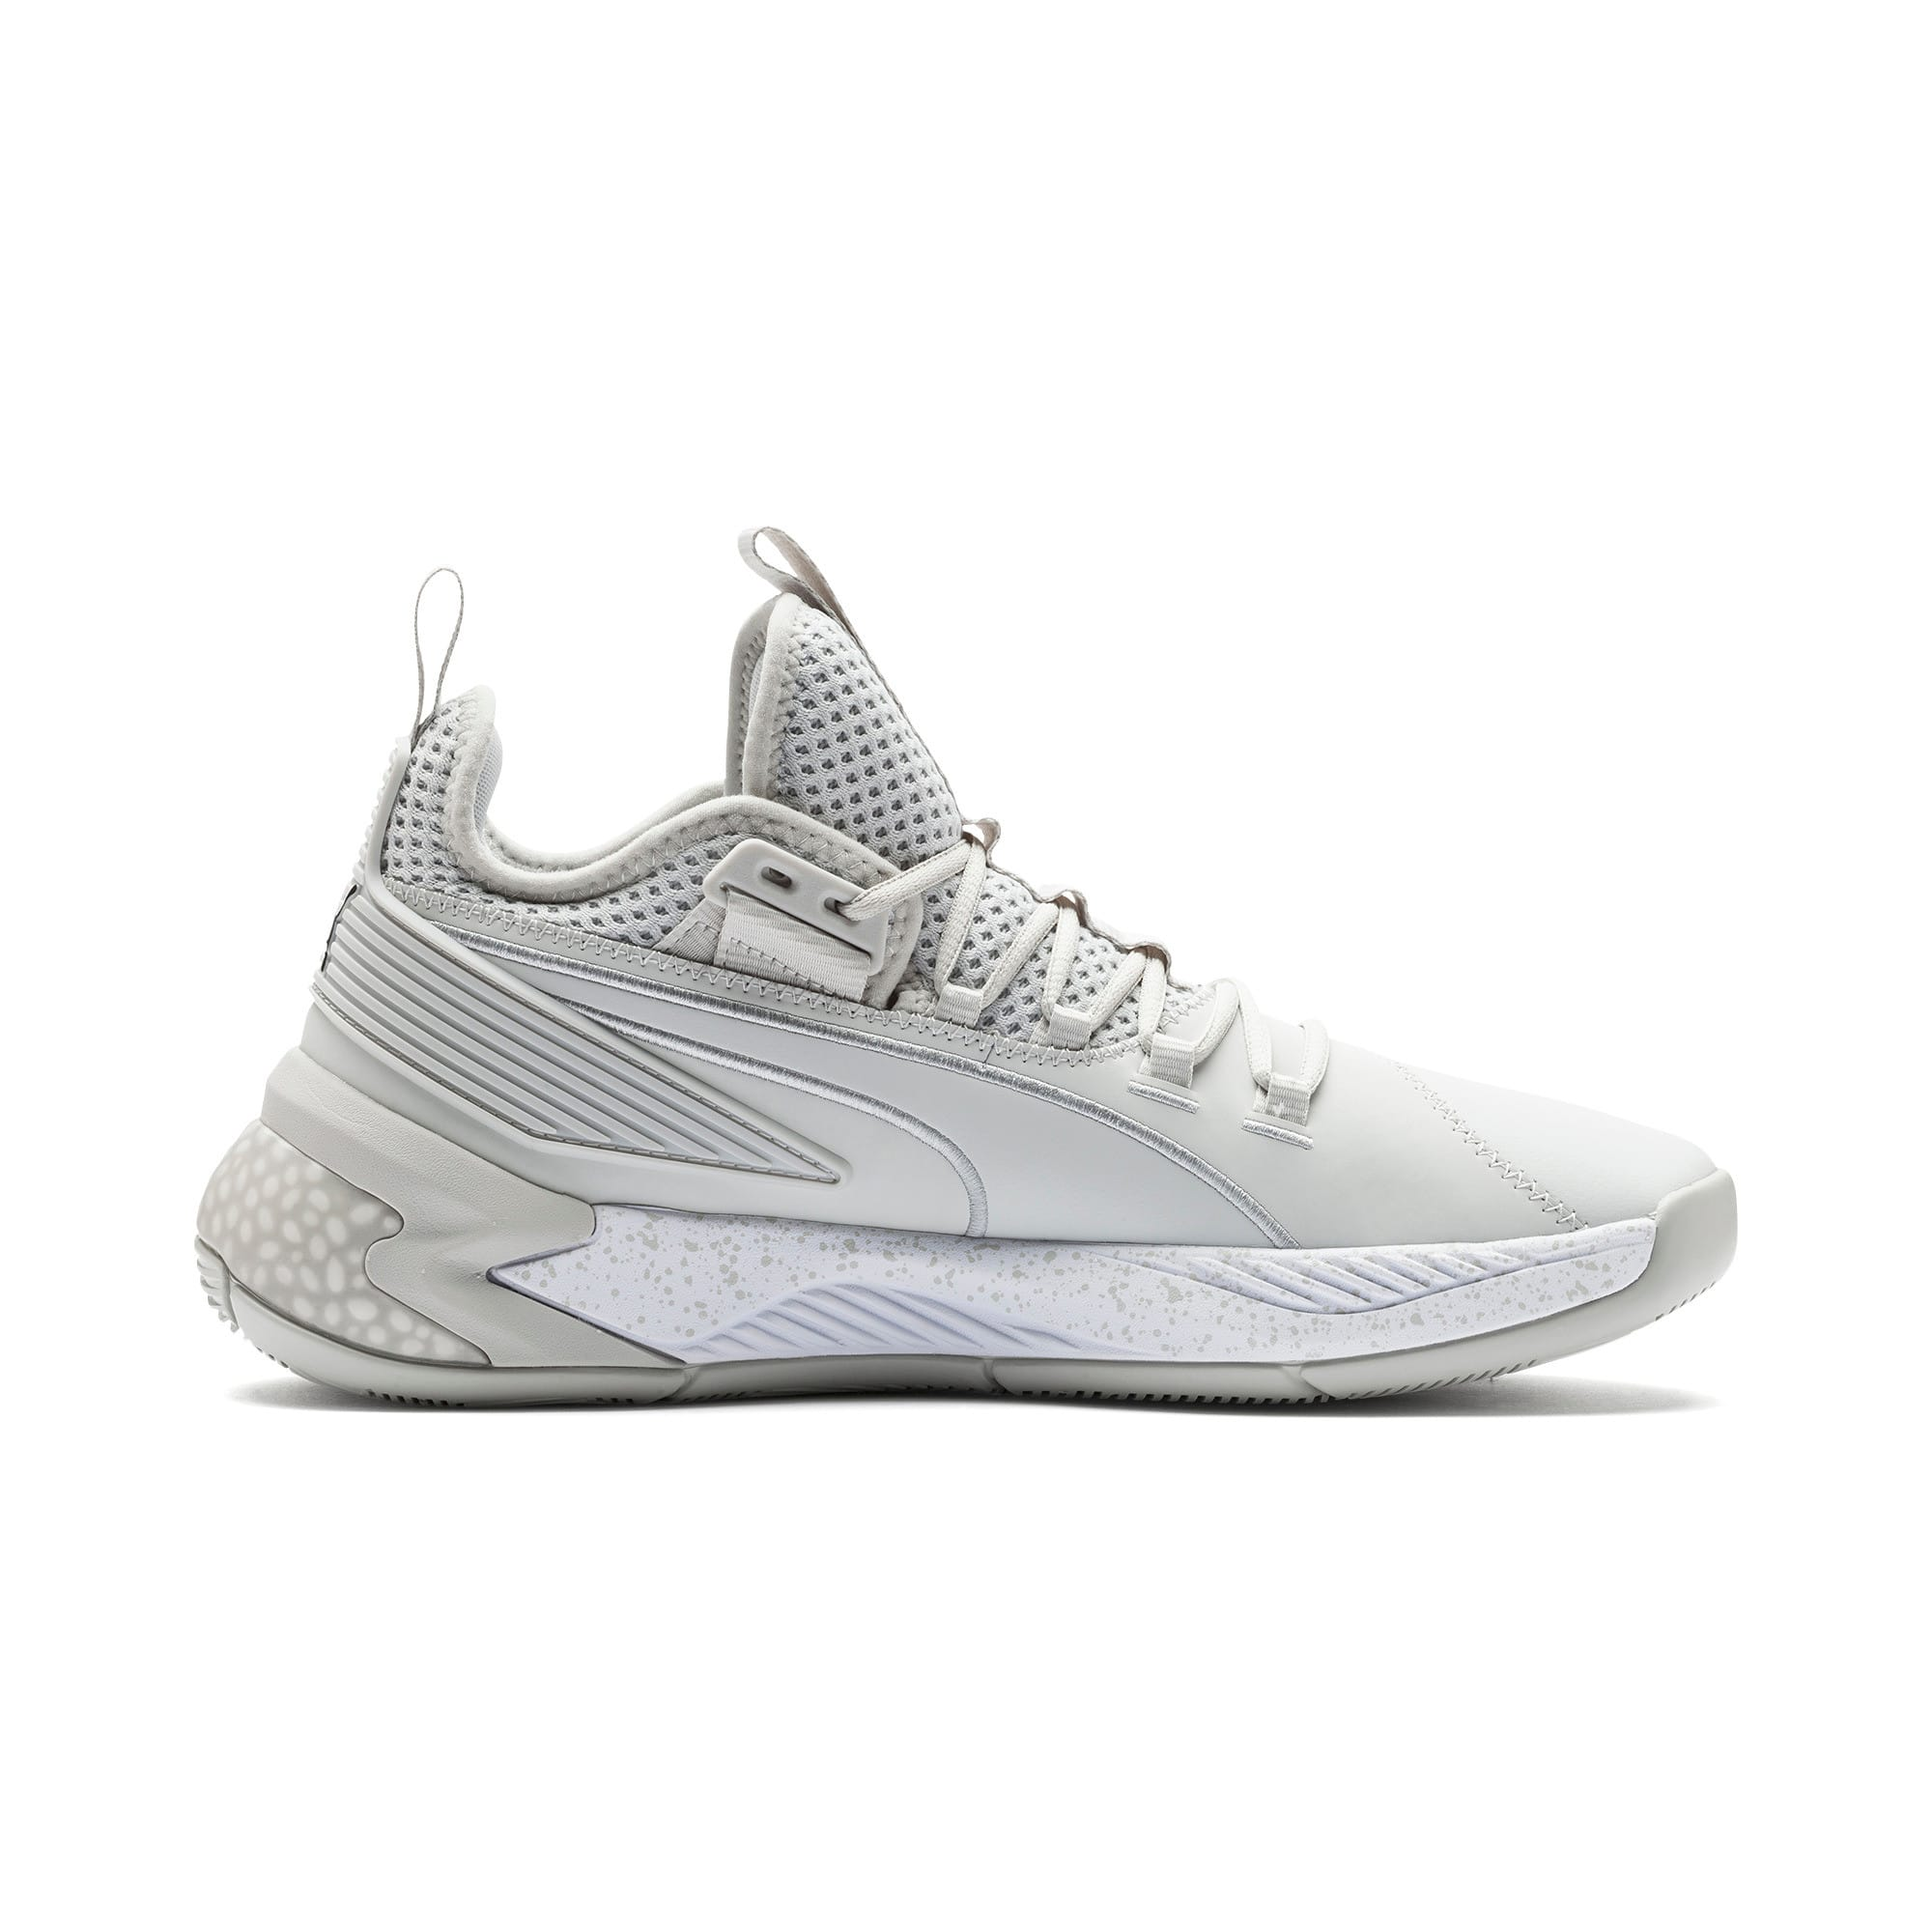 Anteprima 5 di Uproar Core Men's Basketball Shoes, Glacier Gray, medio